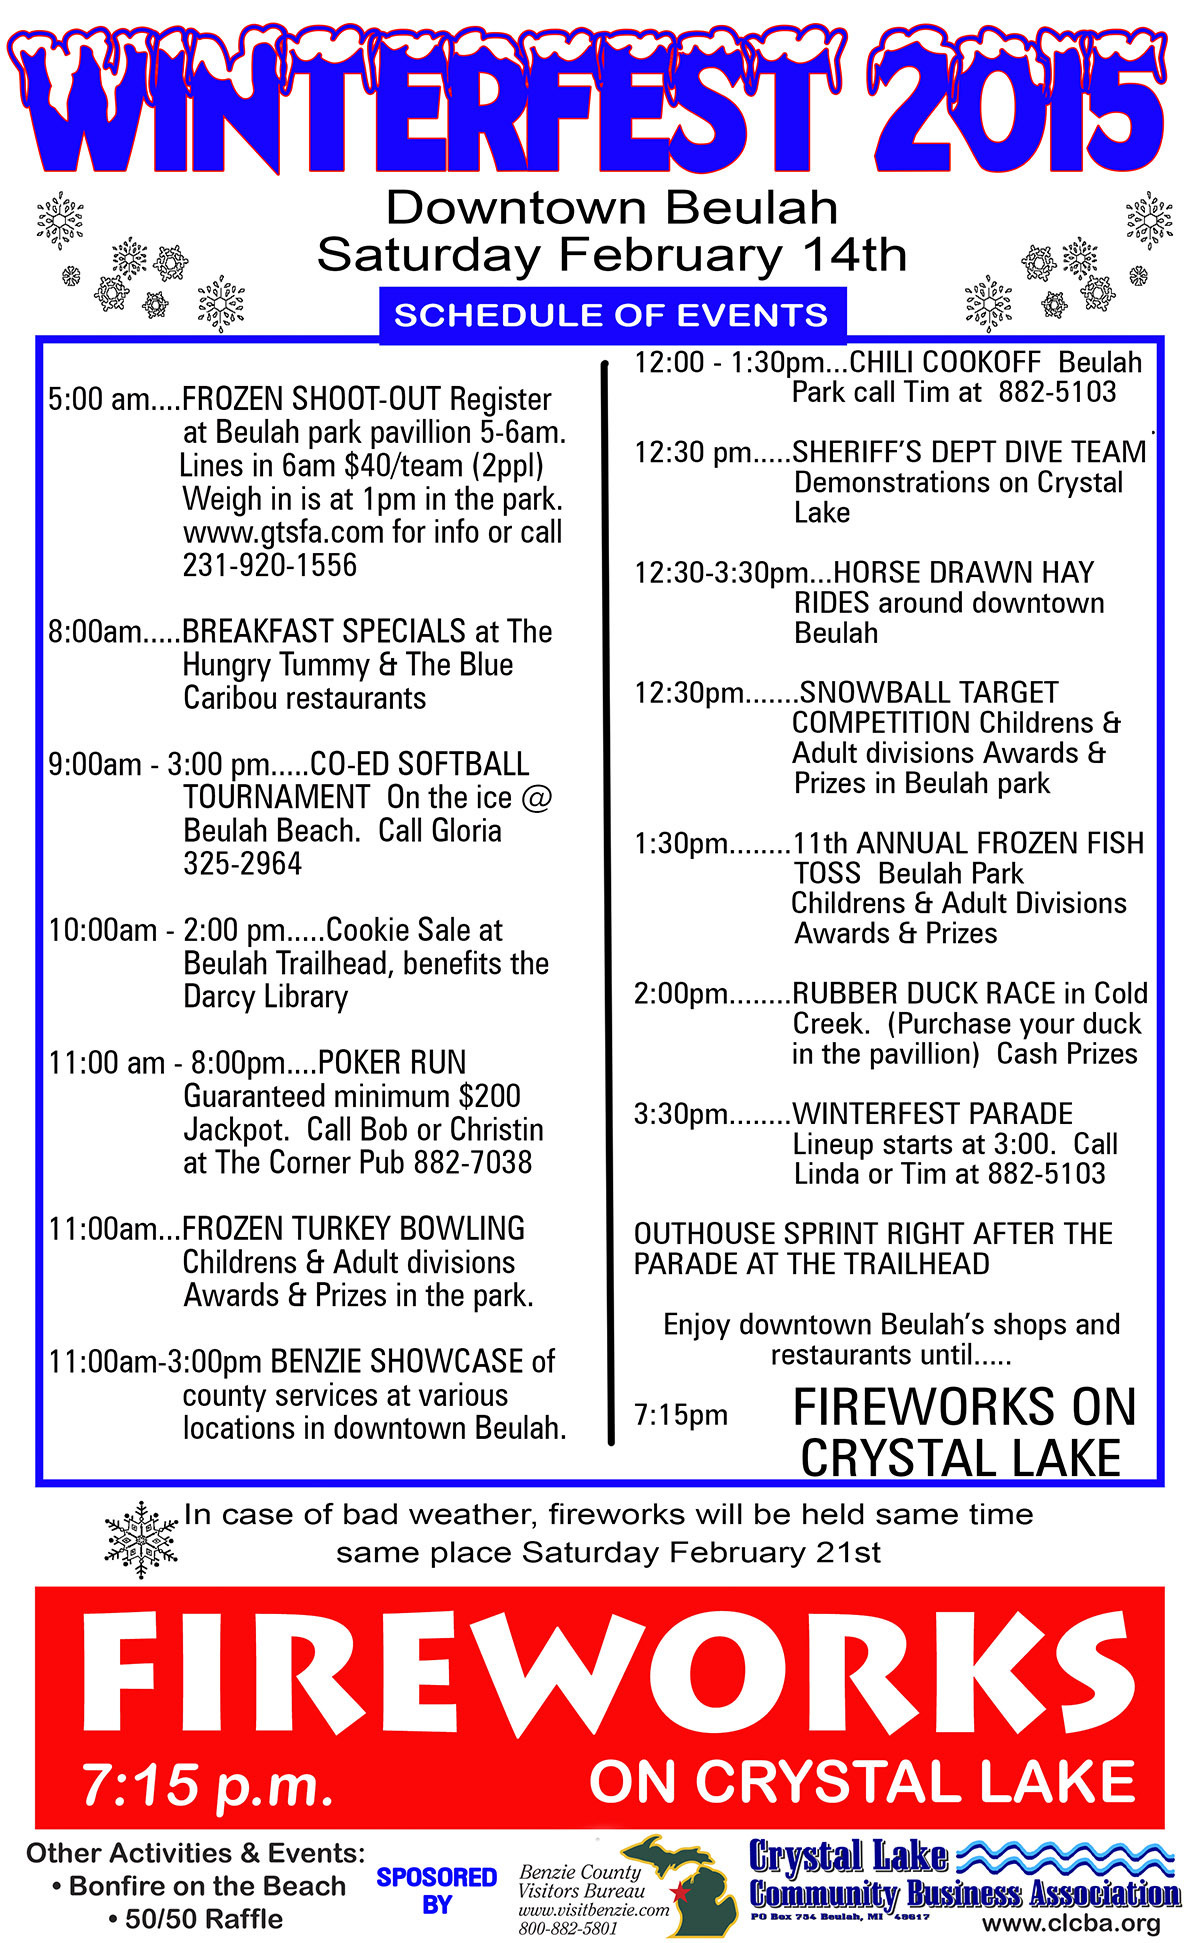 Michigan benzie county benzonia - Sponsored By The Crystal Lake Community Business Association